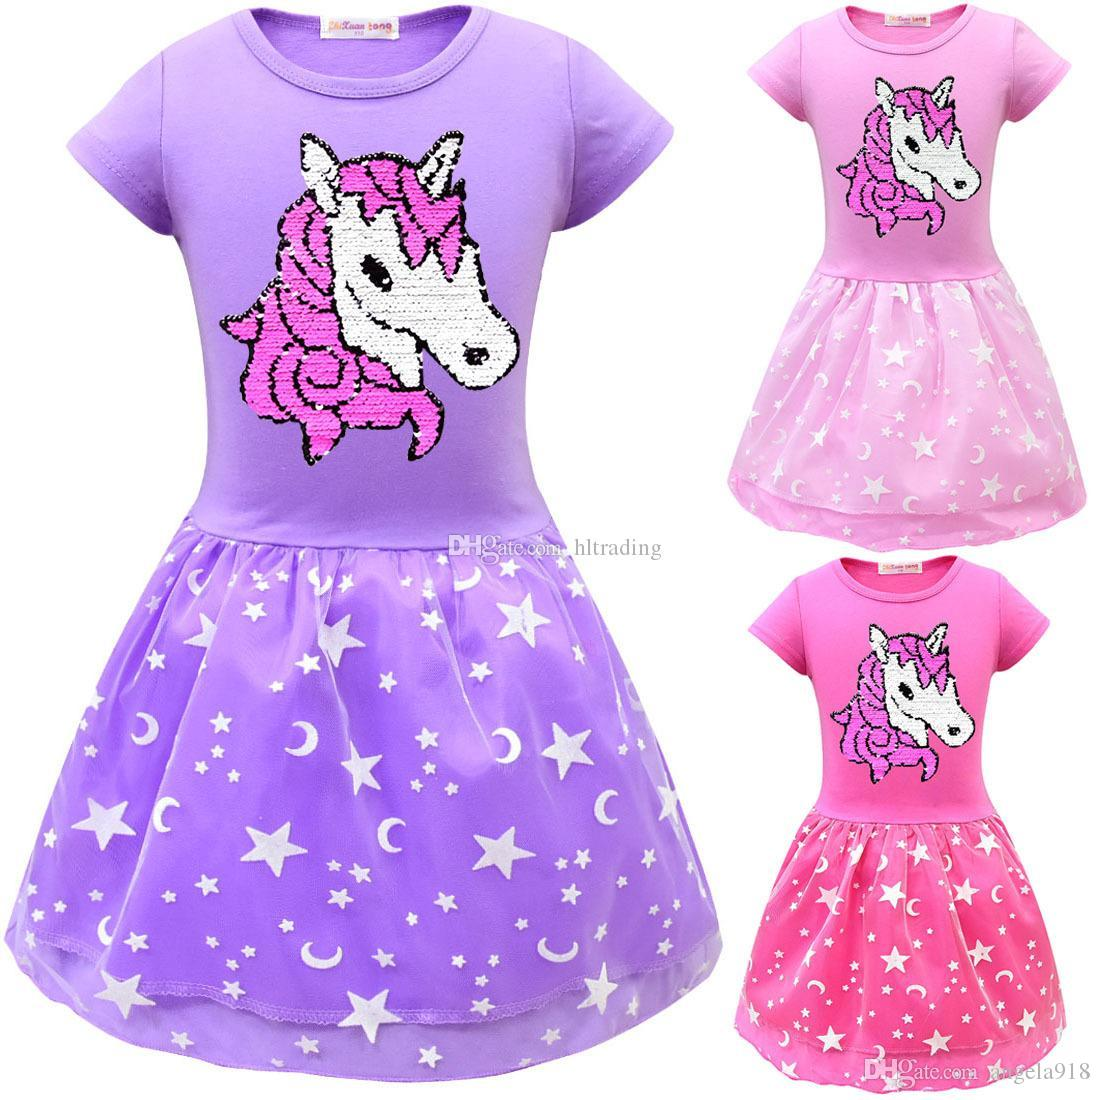 Baby girls Sequin dress children unicorn Tutu lace Tulle princess dresses 2019 summer fashion Boutique kids designer clothes girls C6487